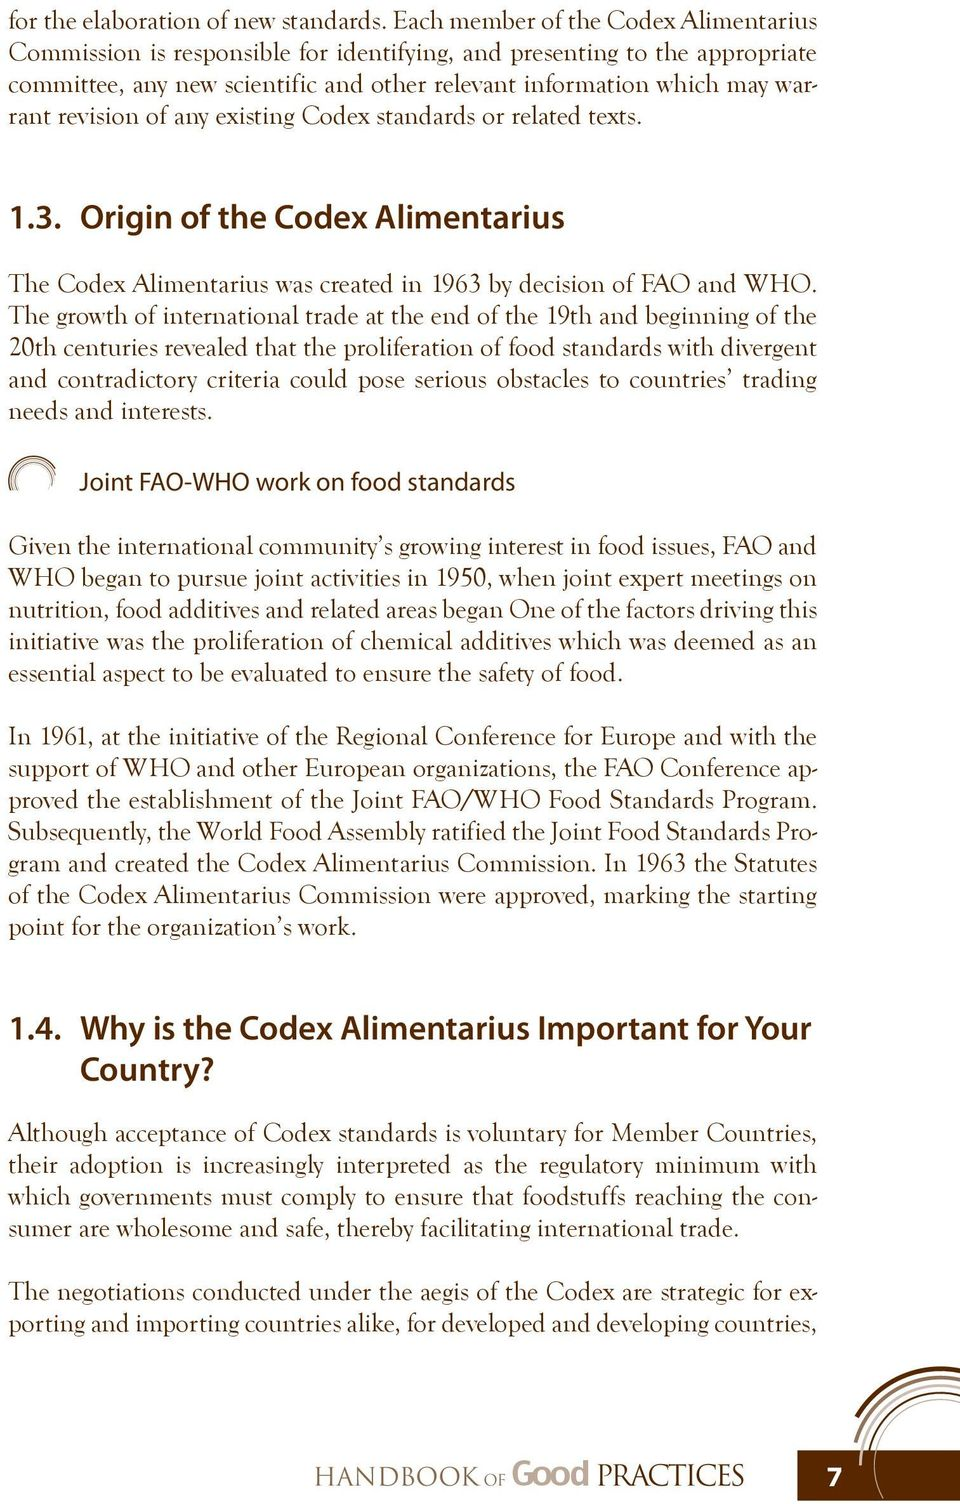 revision of any existing Codex standards or related texts. 1.3. Origin of the Codex Alimentarius The Codex Alimentarius was created in 1963 by decision of FAO and WHO.